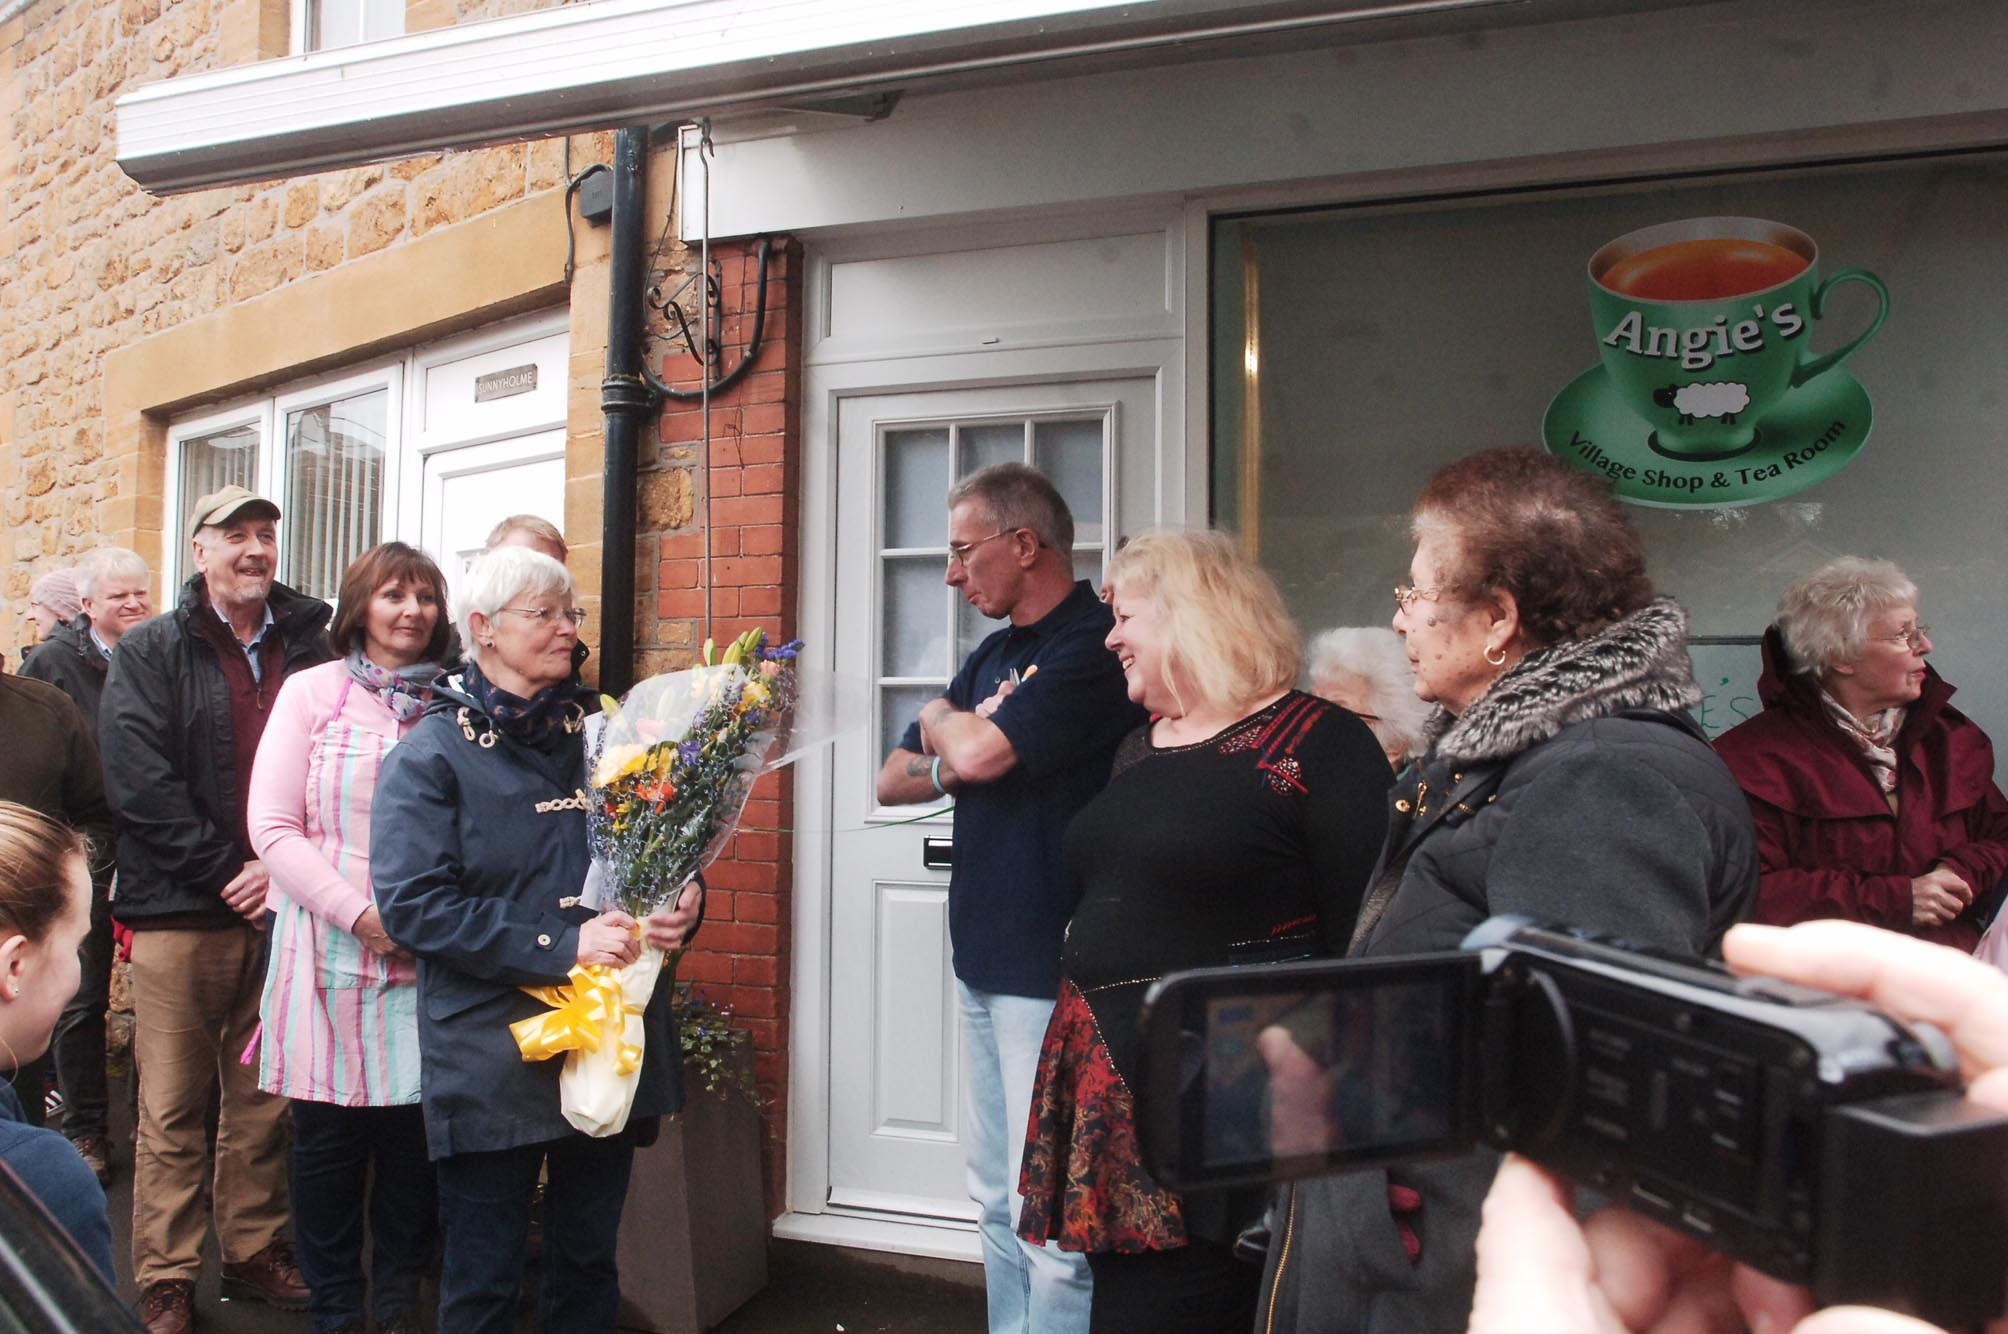 OPEN: The launch of the new community shop and cafe in Shepton Beauchamp